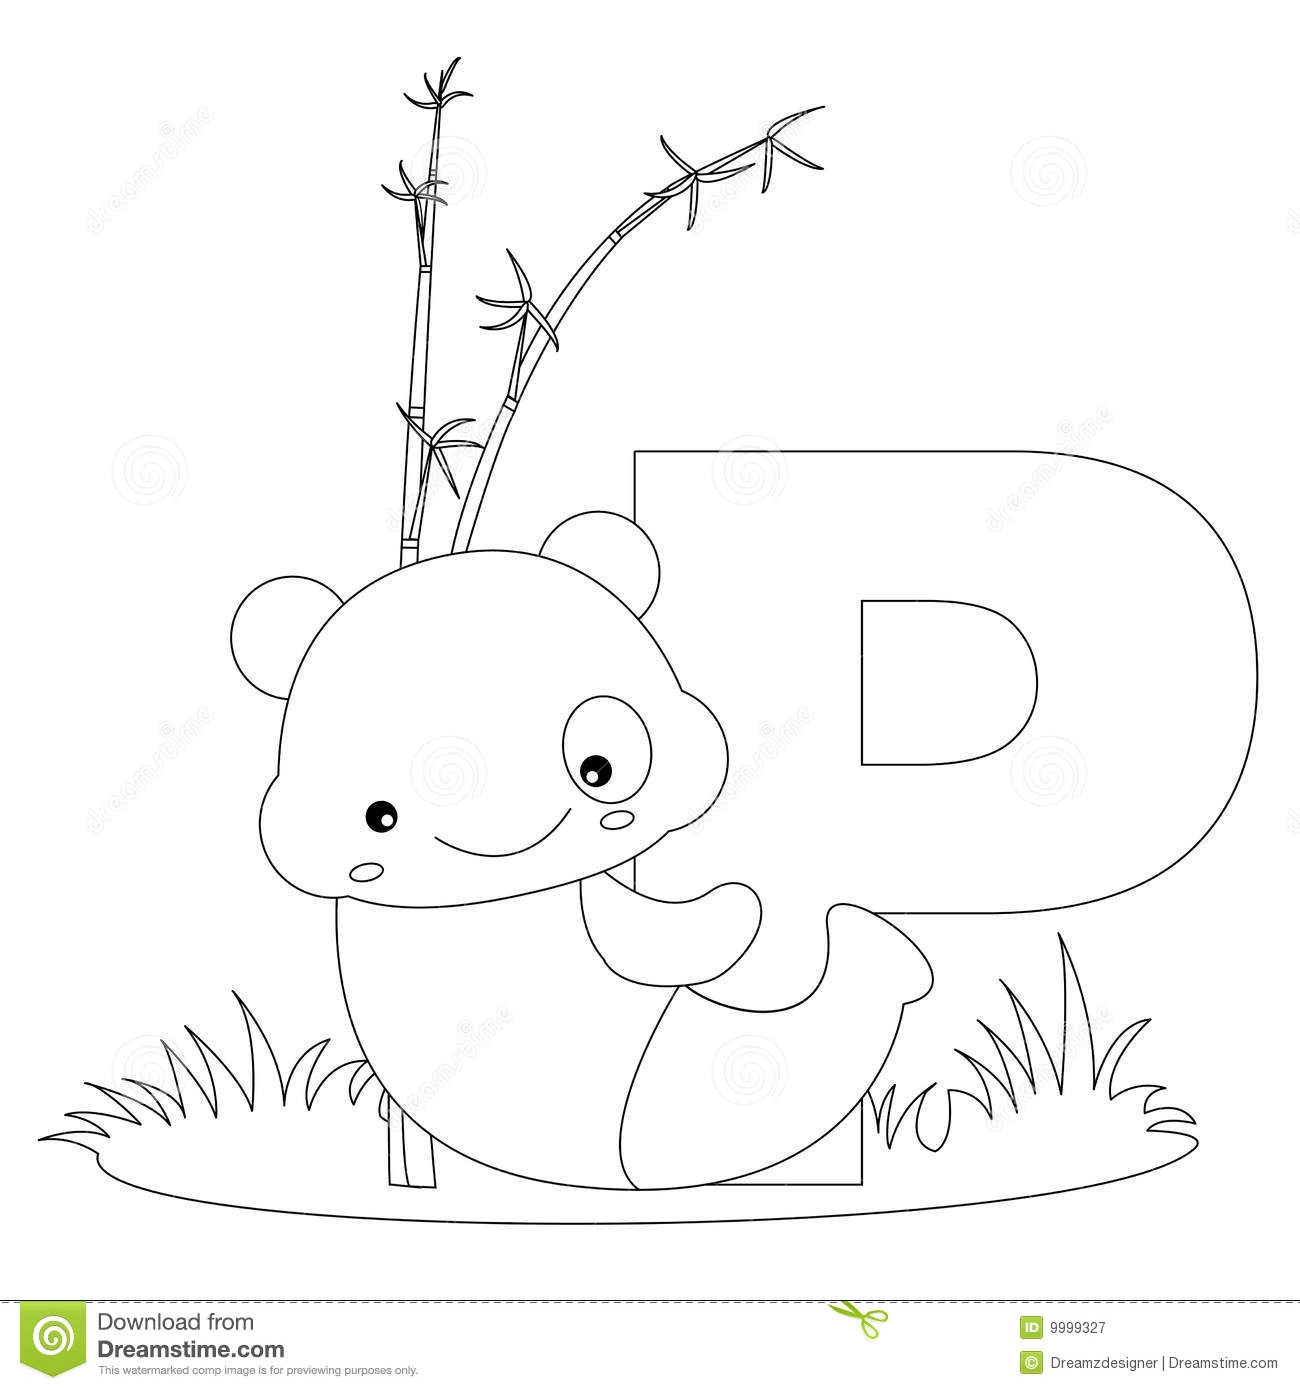 Animal alphabet p coloring page